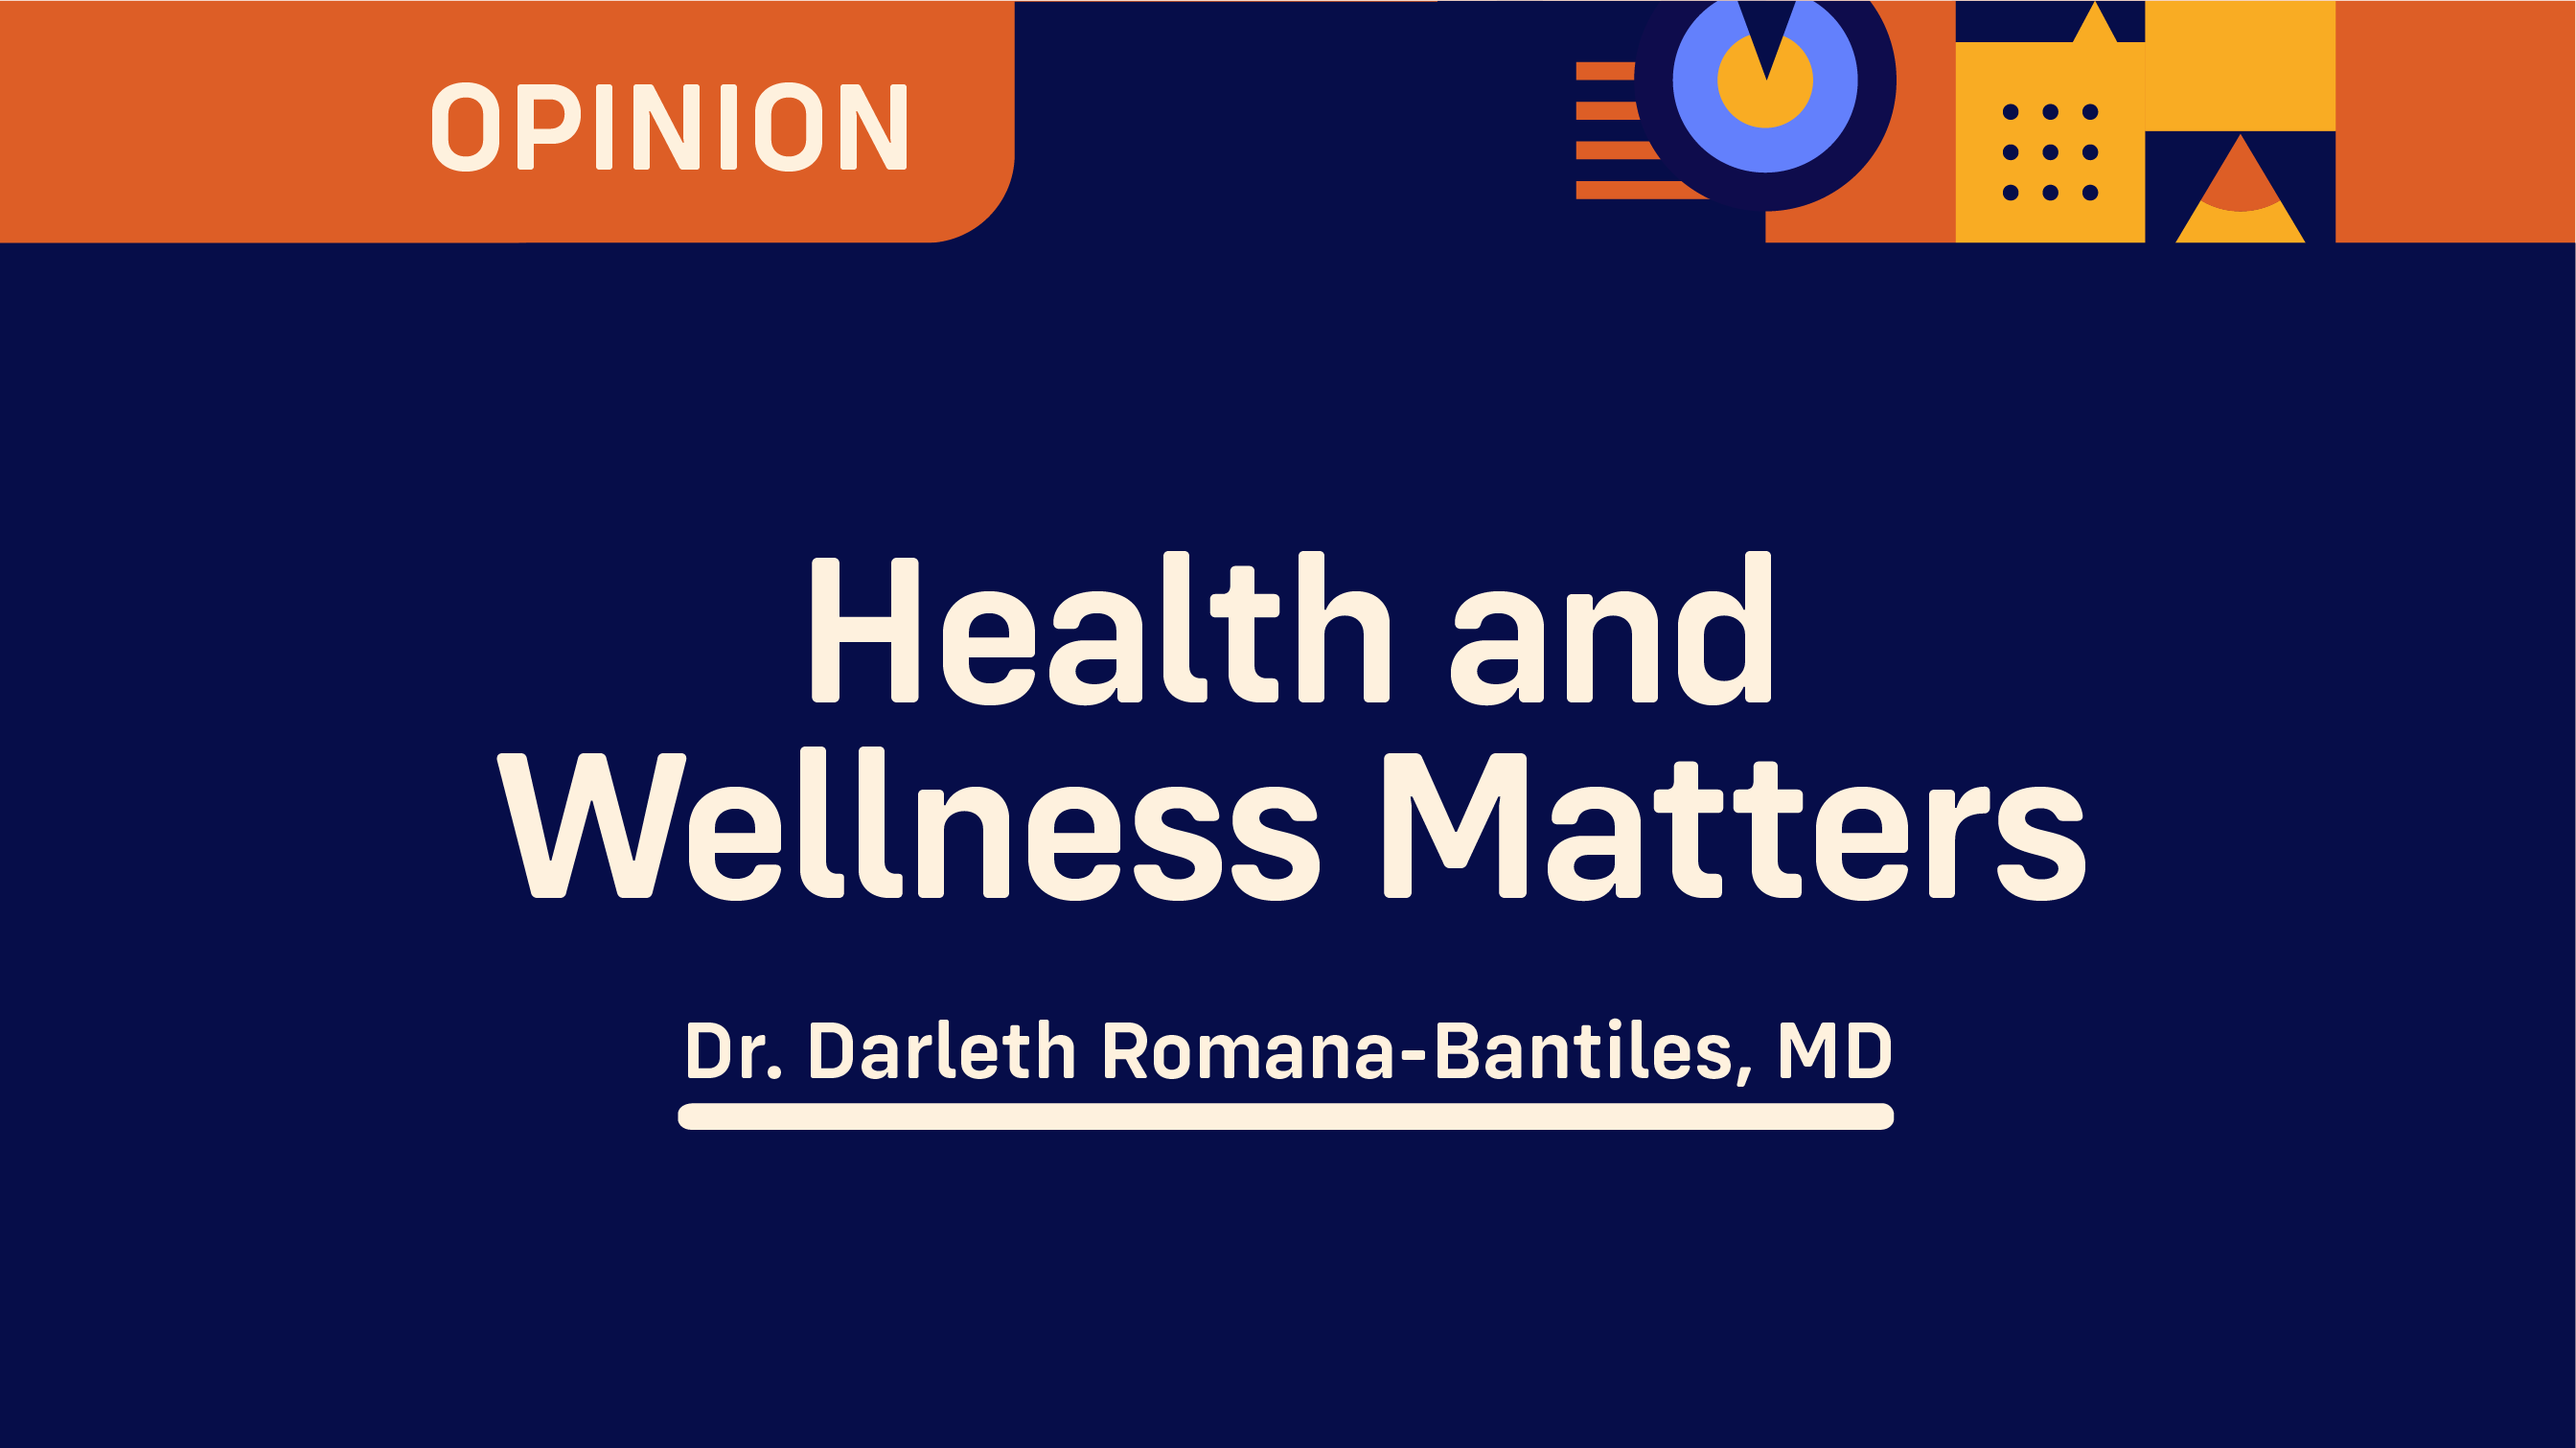 Health and Wellness Matters Dr. Darleth Romana-Bantiles, MD